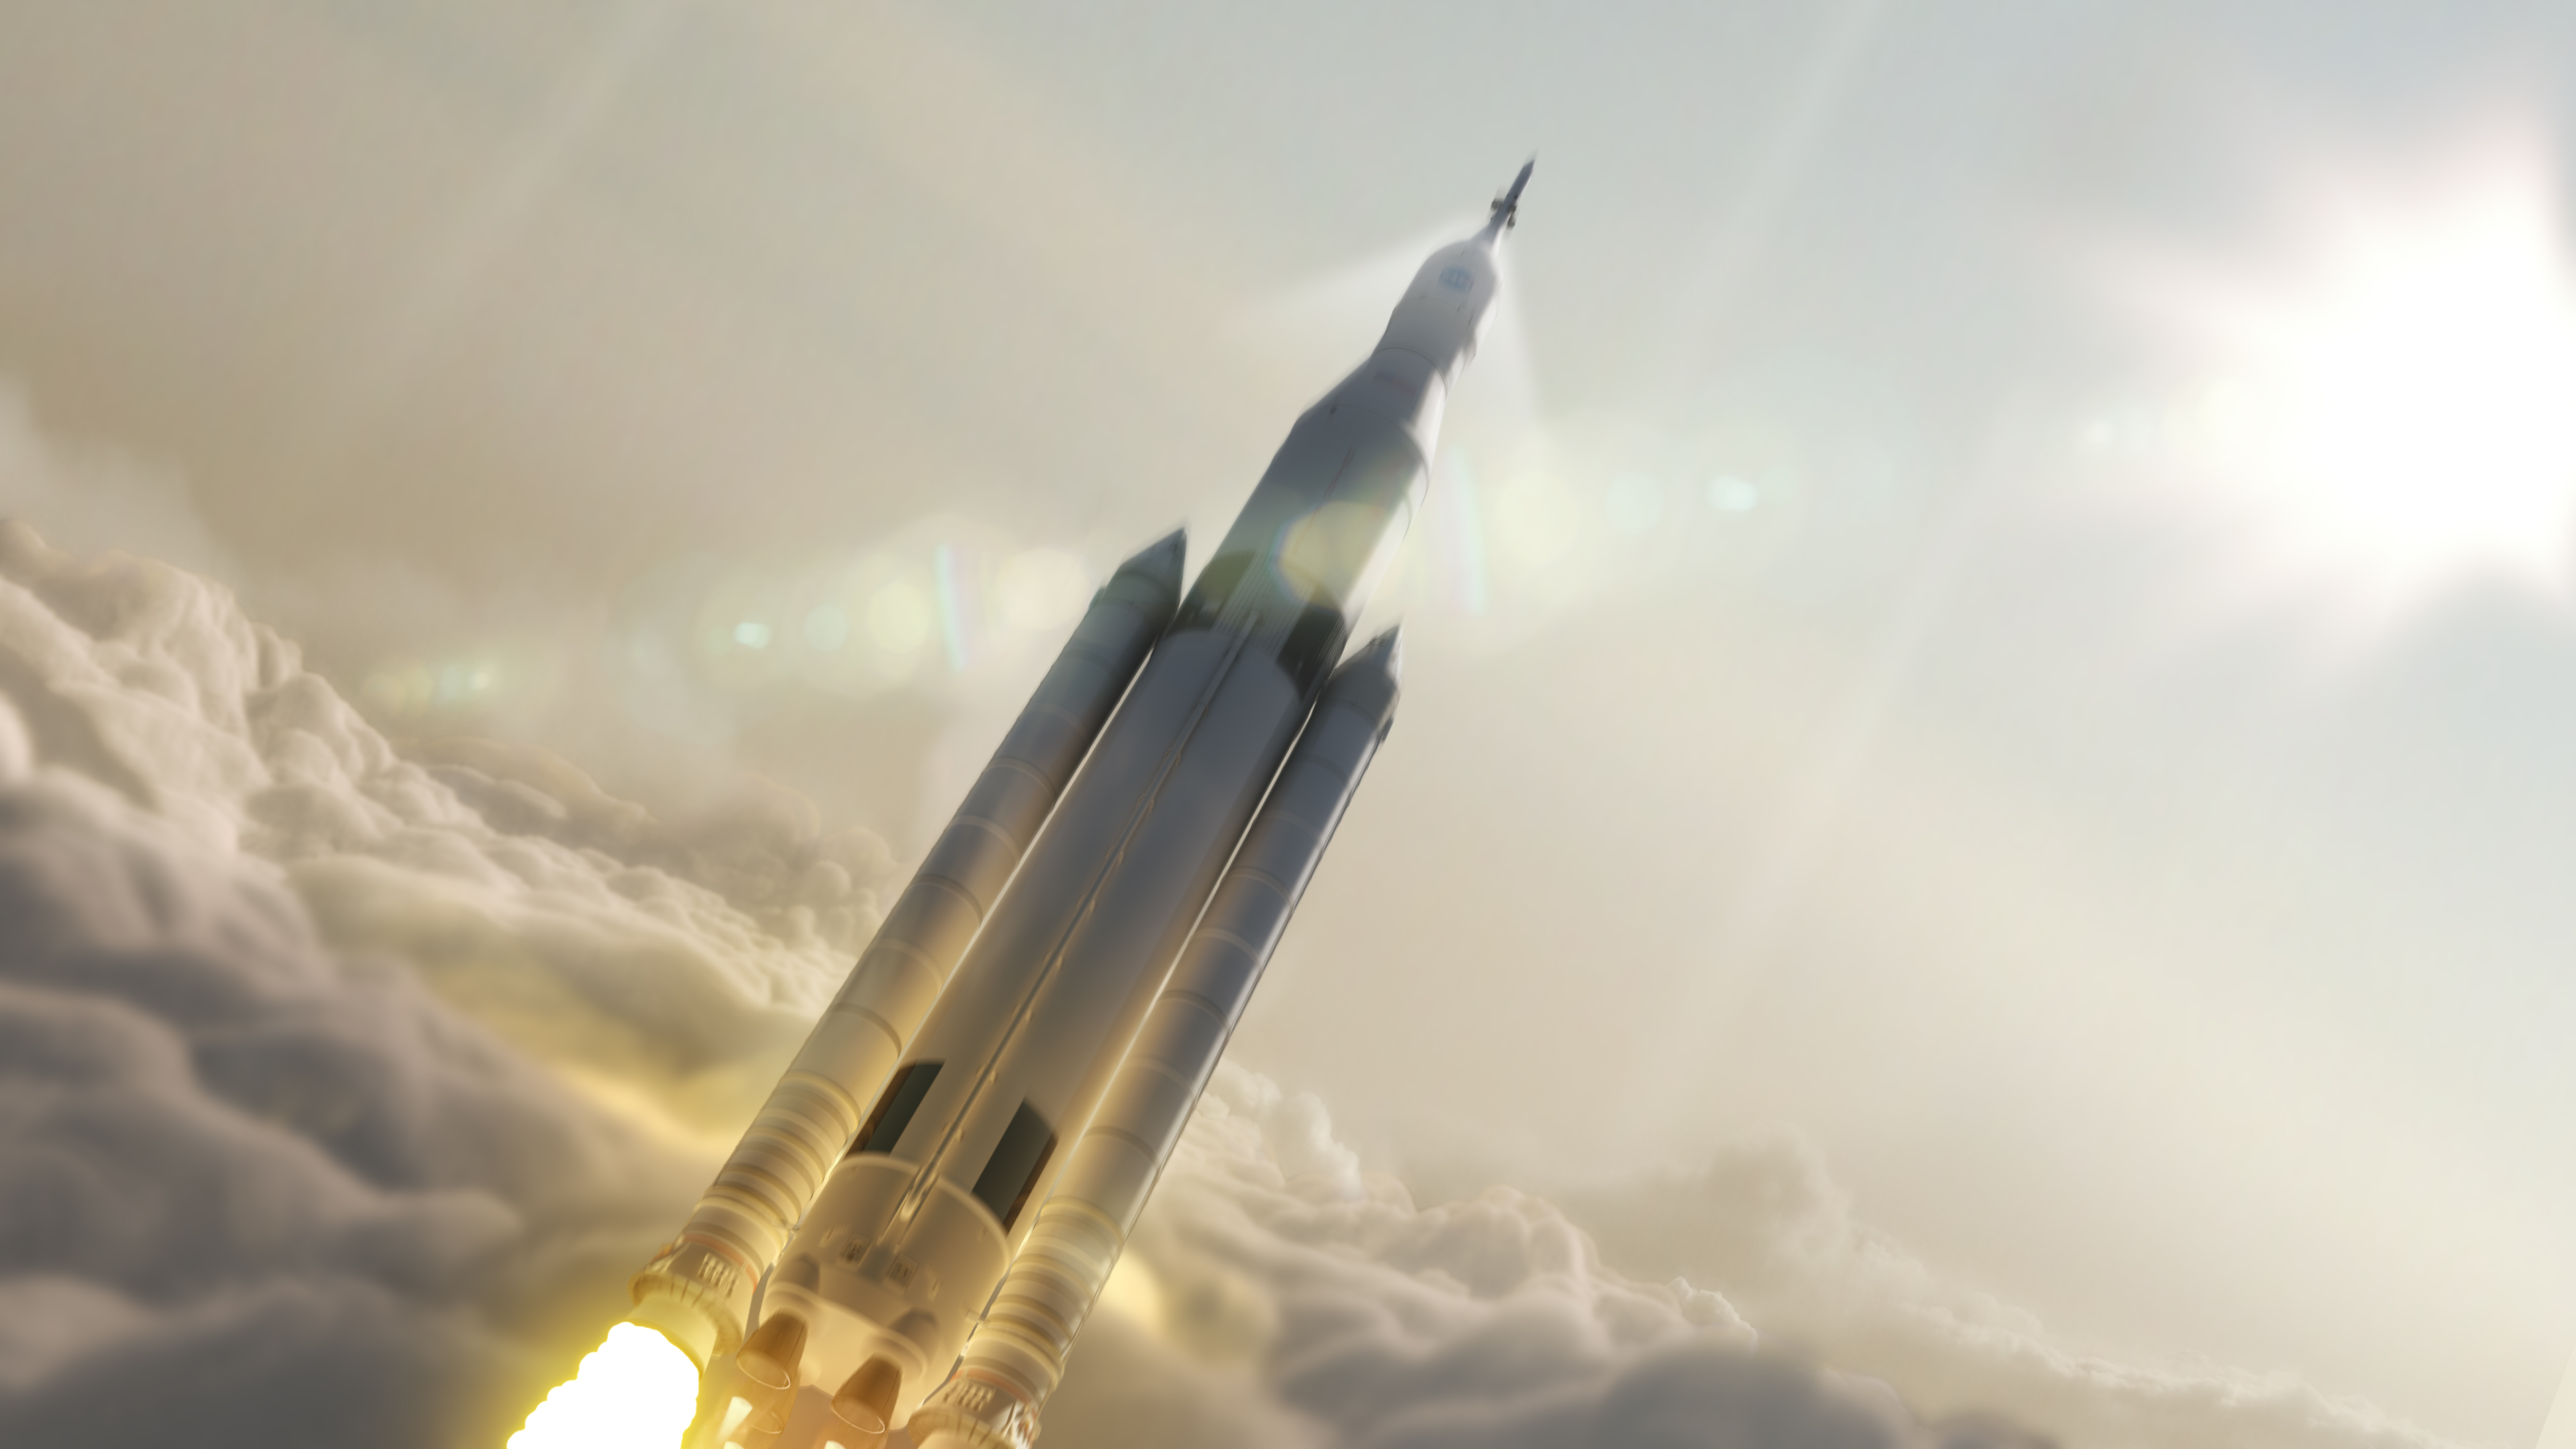 nasa spacecraft concept - photo #8